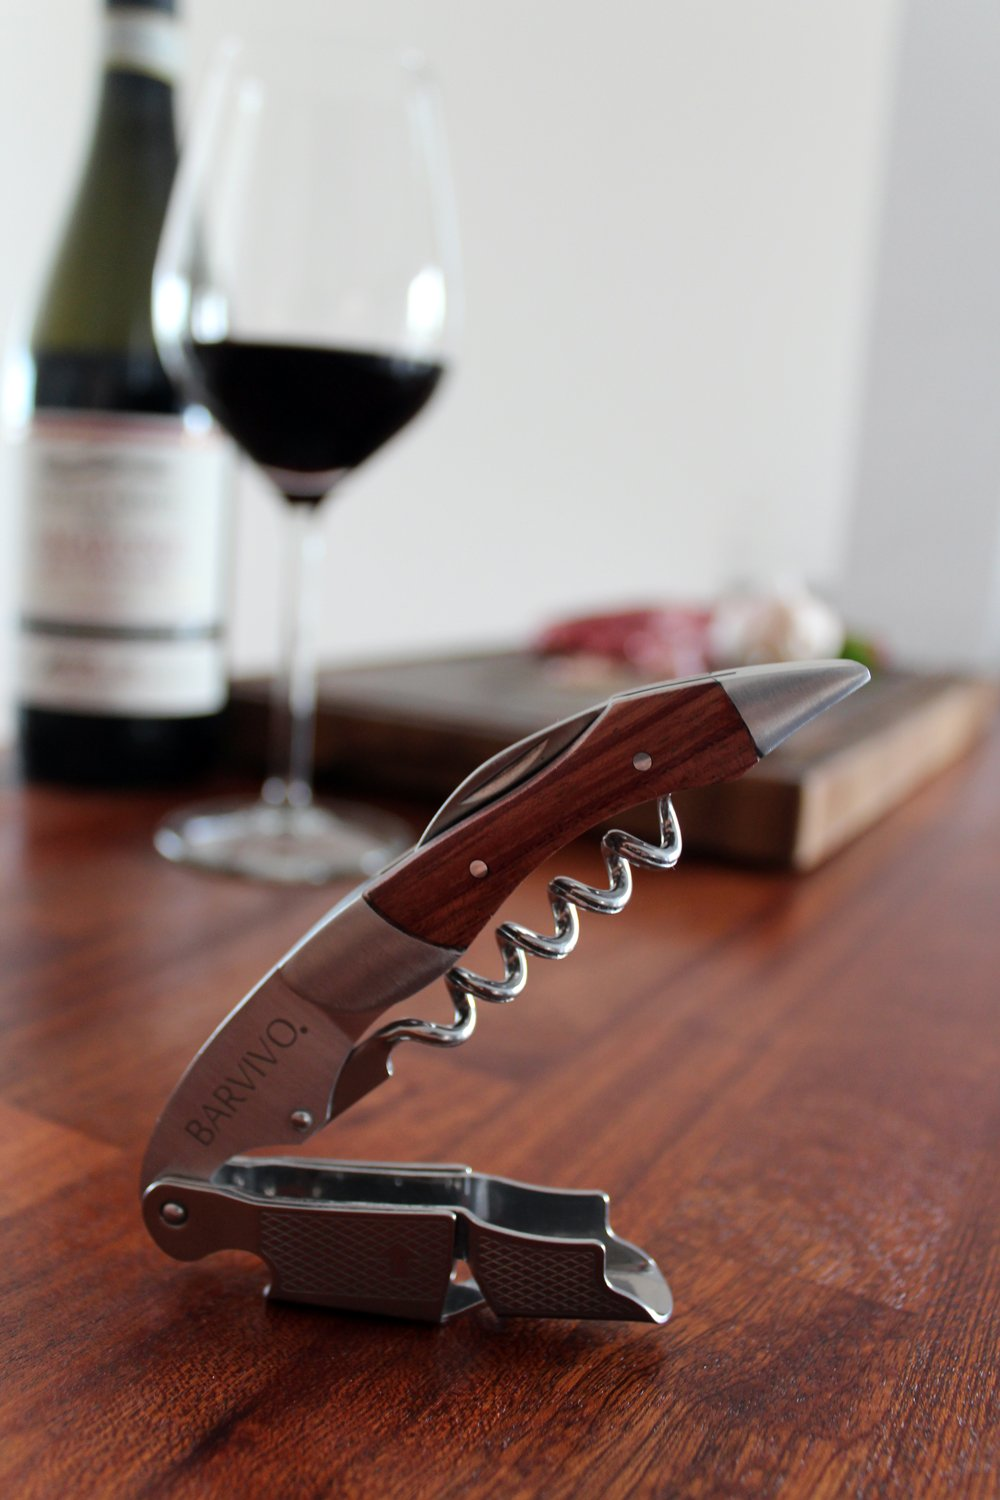 Professional Waiters Corkscrew by Barvivo - This Wine Opener is Used to Open Beer and Wine Bottles by Waiters, Sommelier and Bartenders Around the World. Made of Stainless Steel and Natural Rosewood. by Barvivo (Image #9)